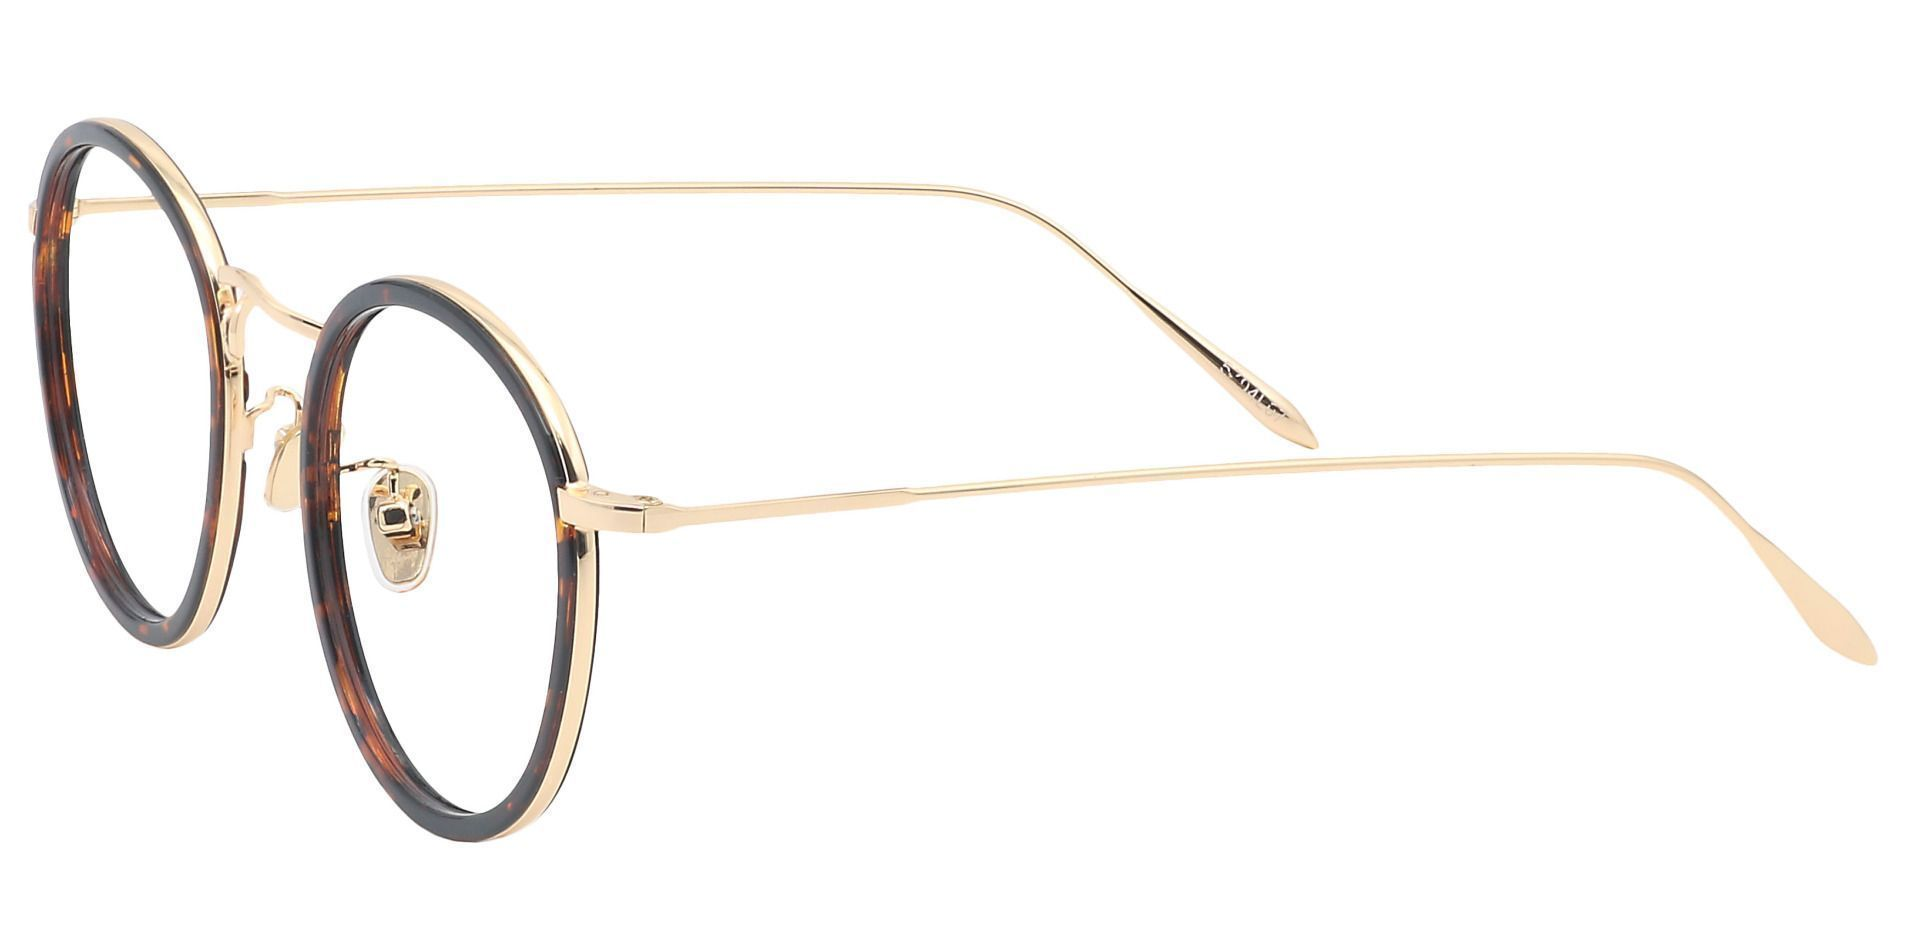 Croatia Round Prescription Glasses - Leopard